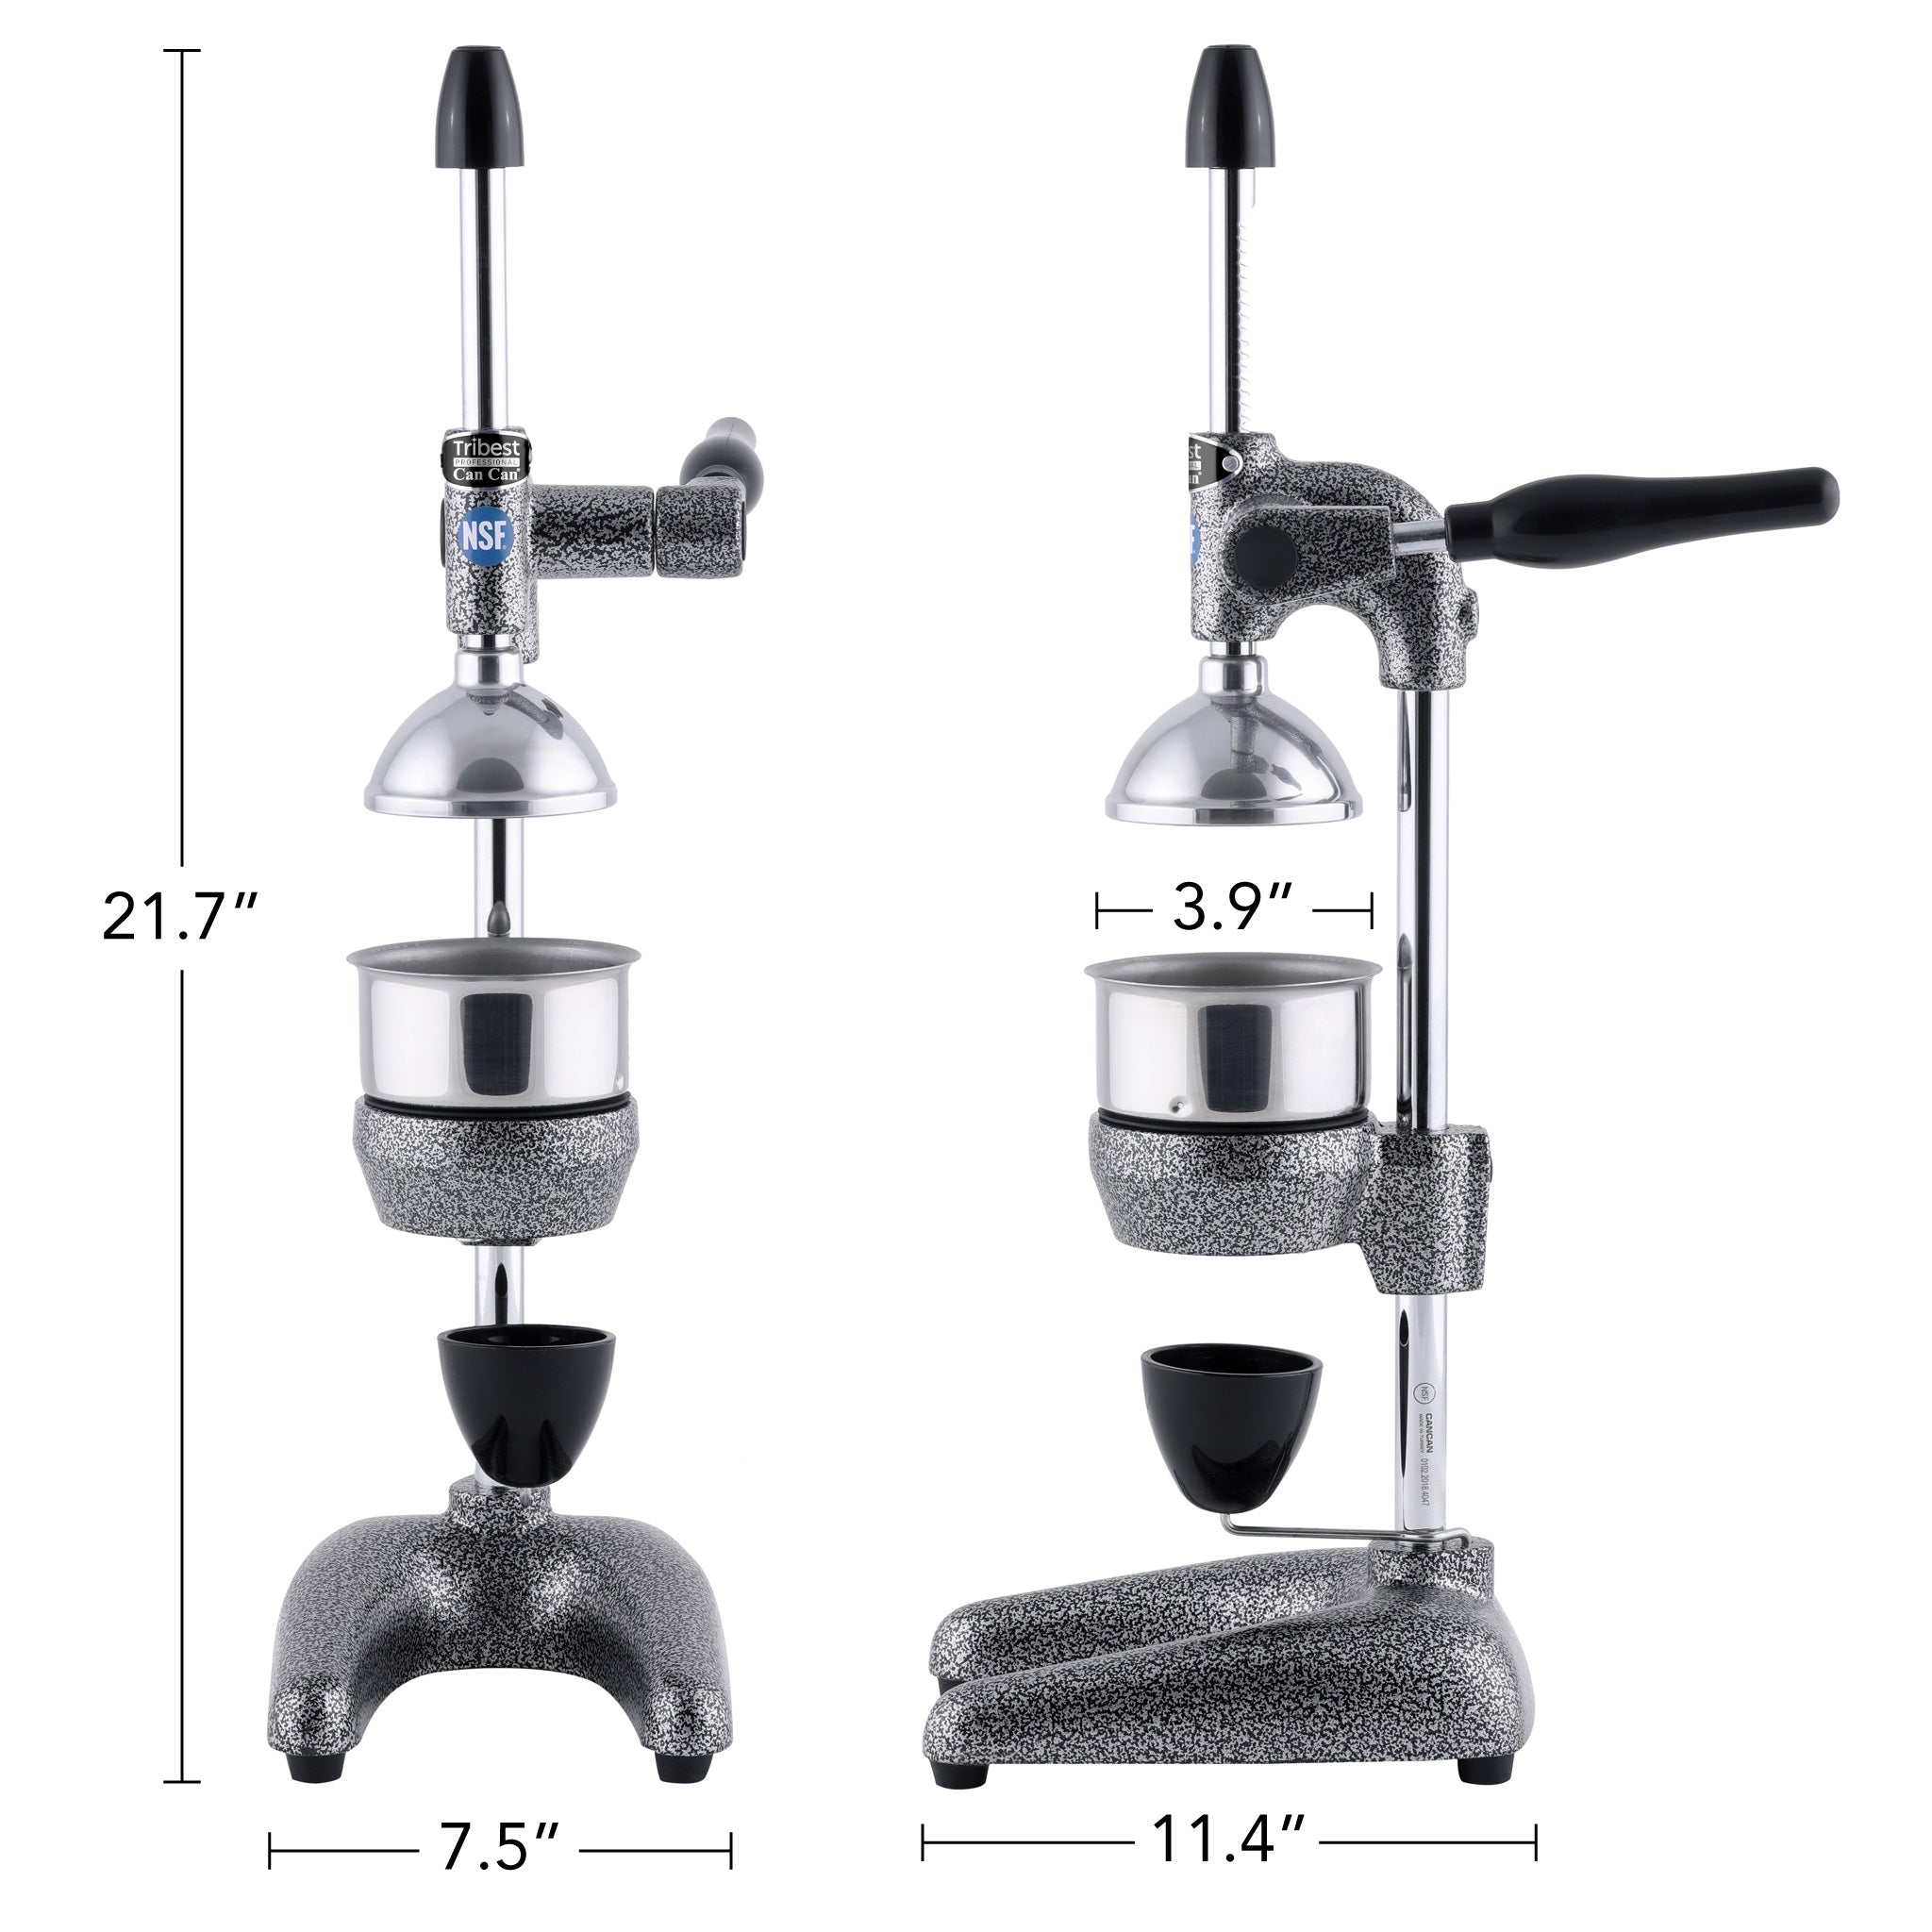 "Tribest Professional Cancan Manual Juice Press MJP-100 21.7"" x 7.5"" x 11.4"""